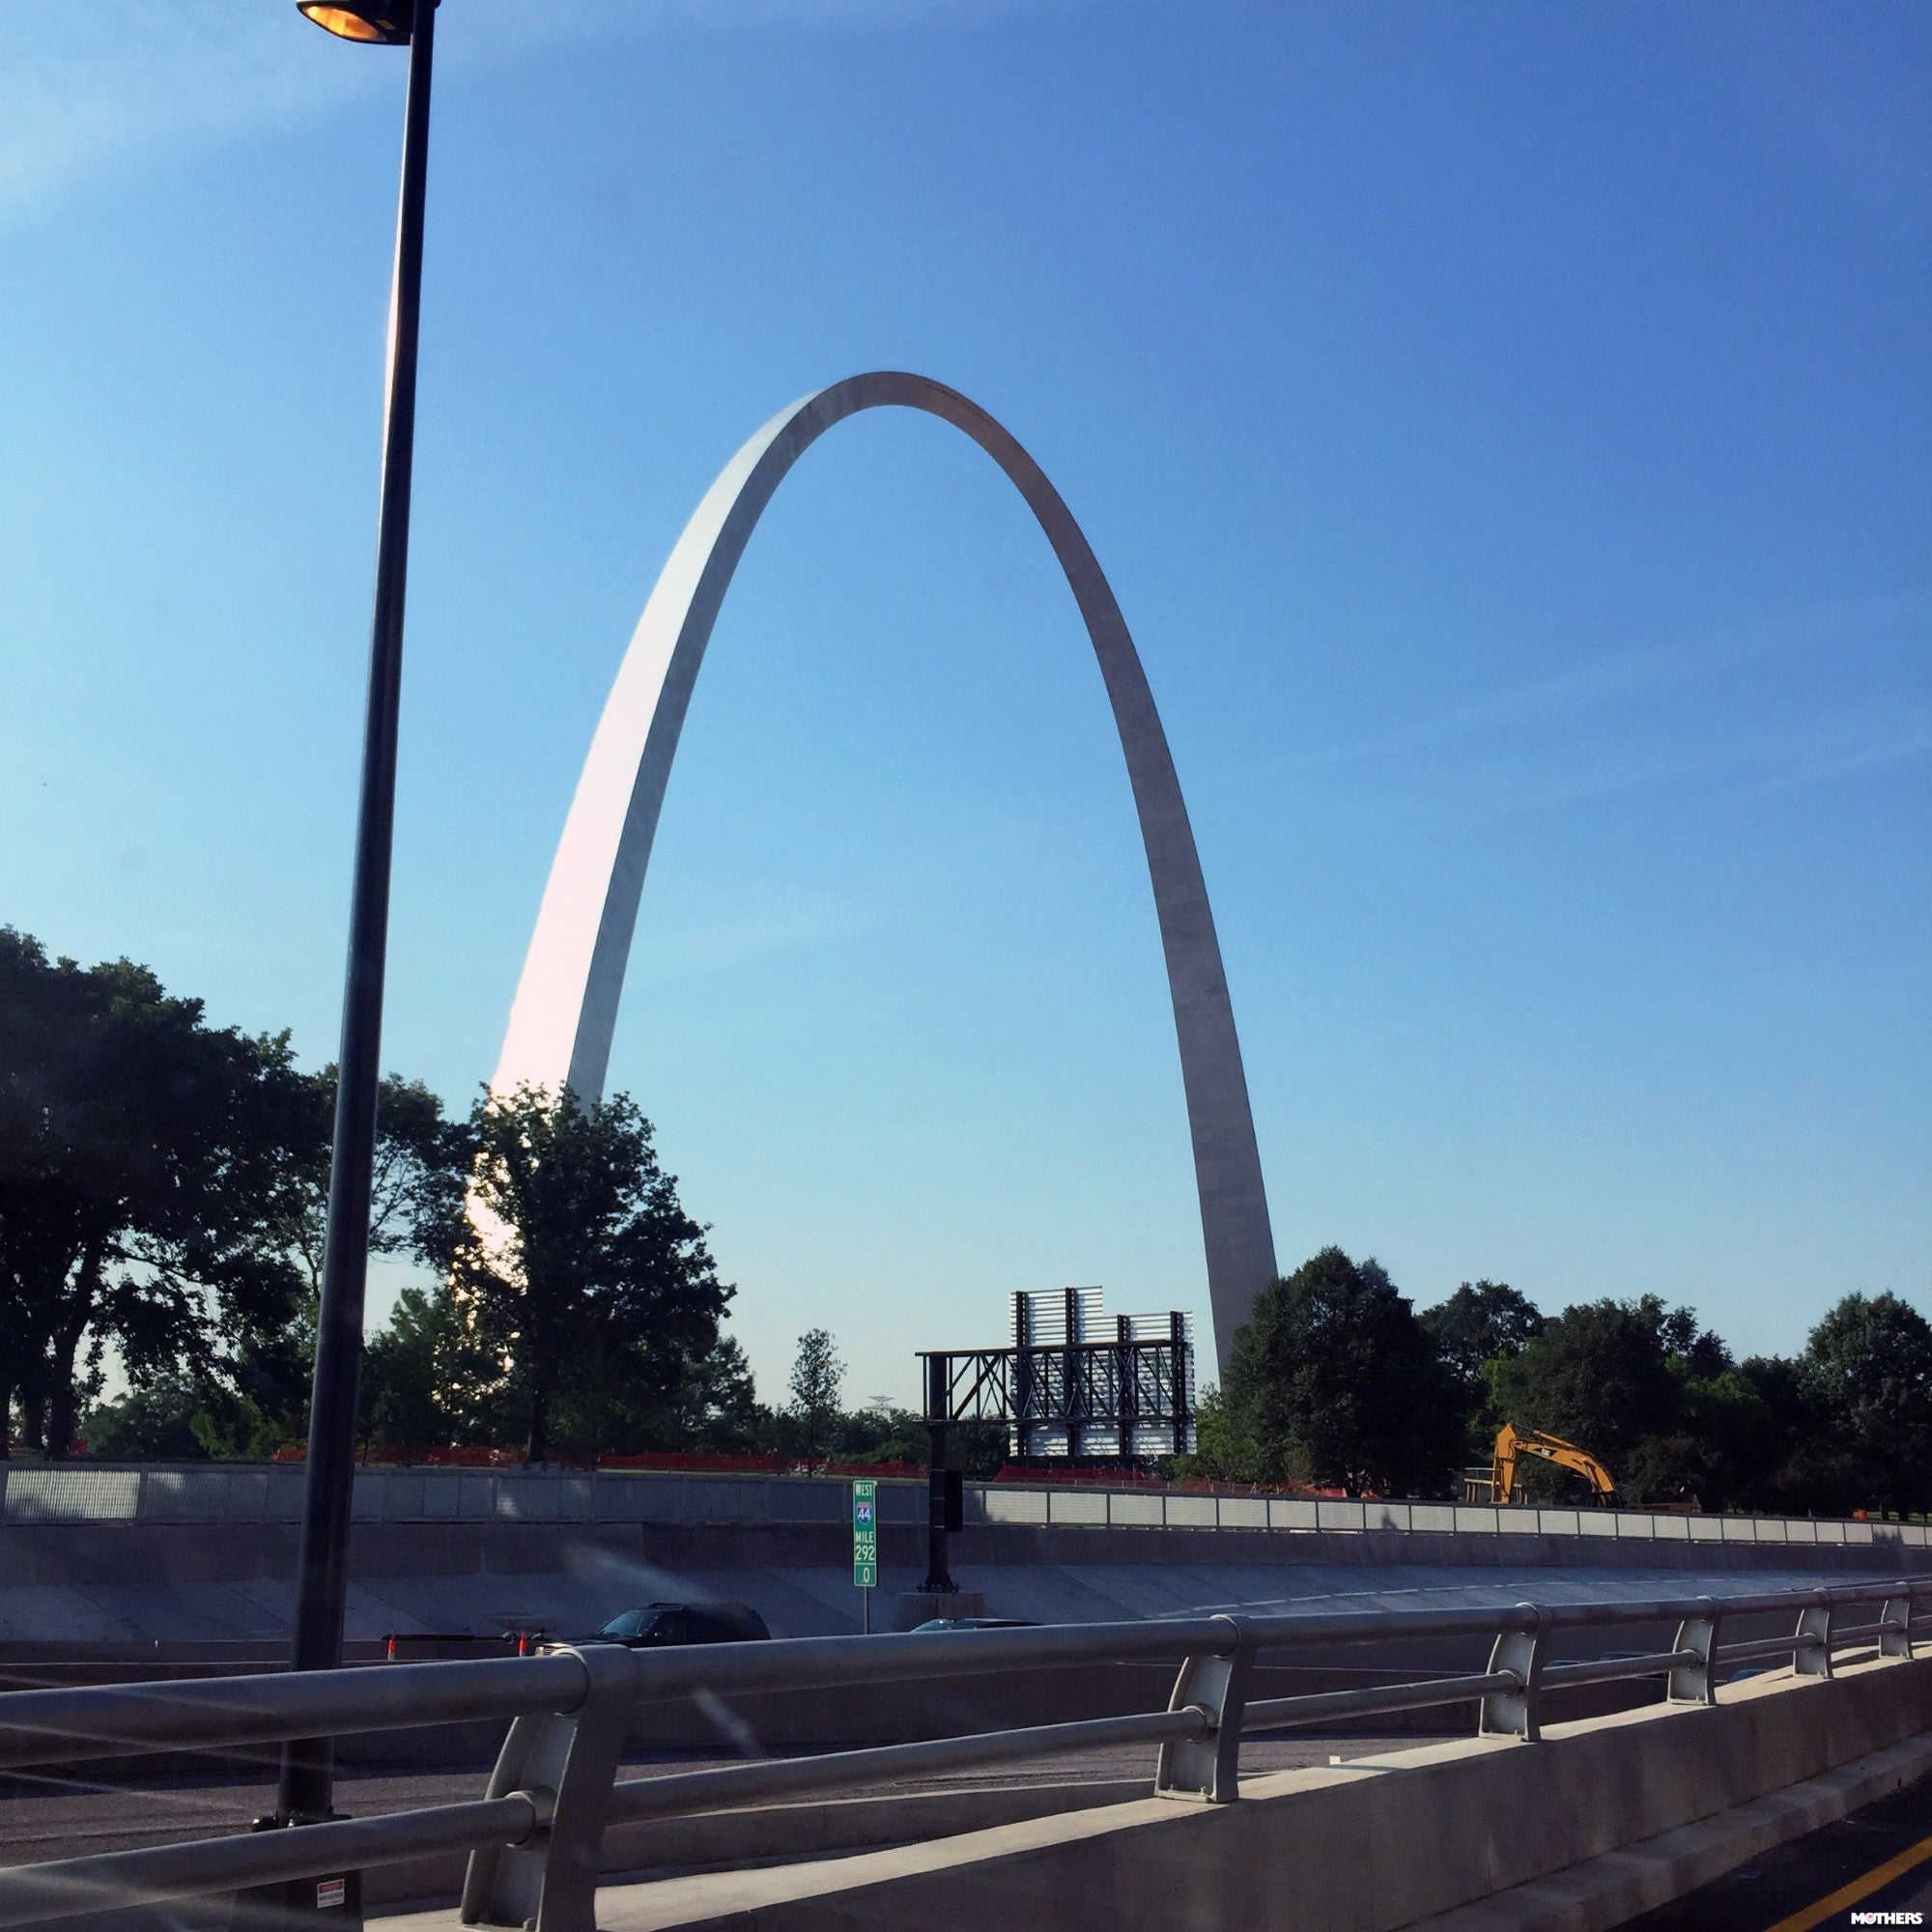 architectural arch in a city